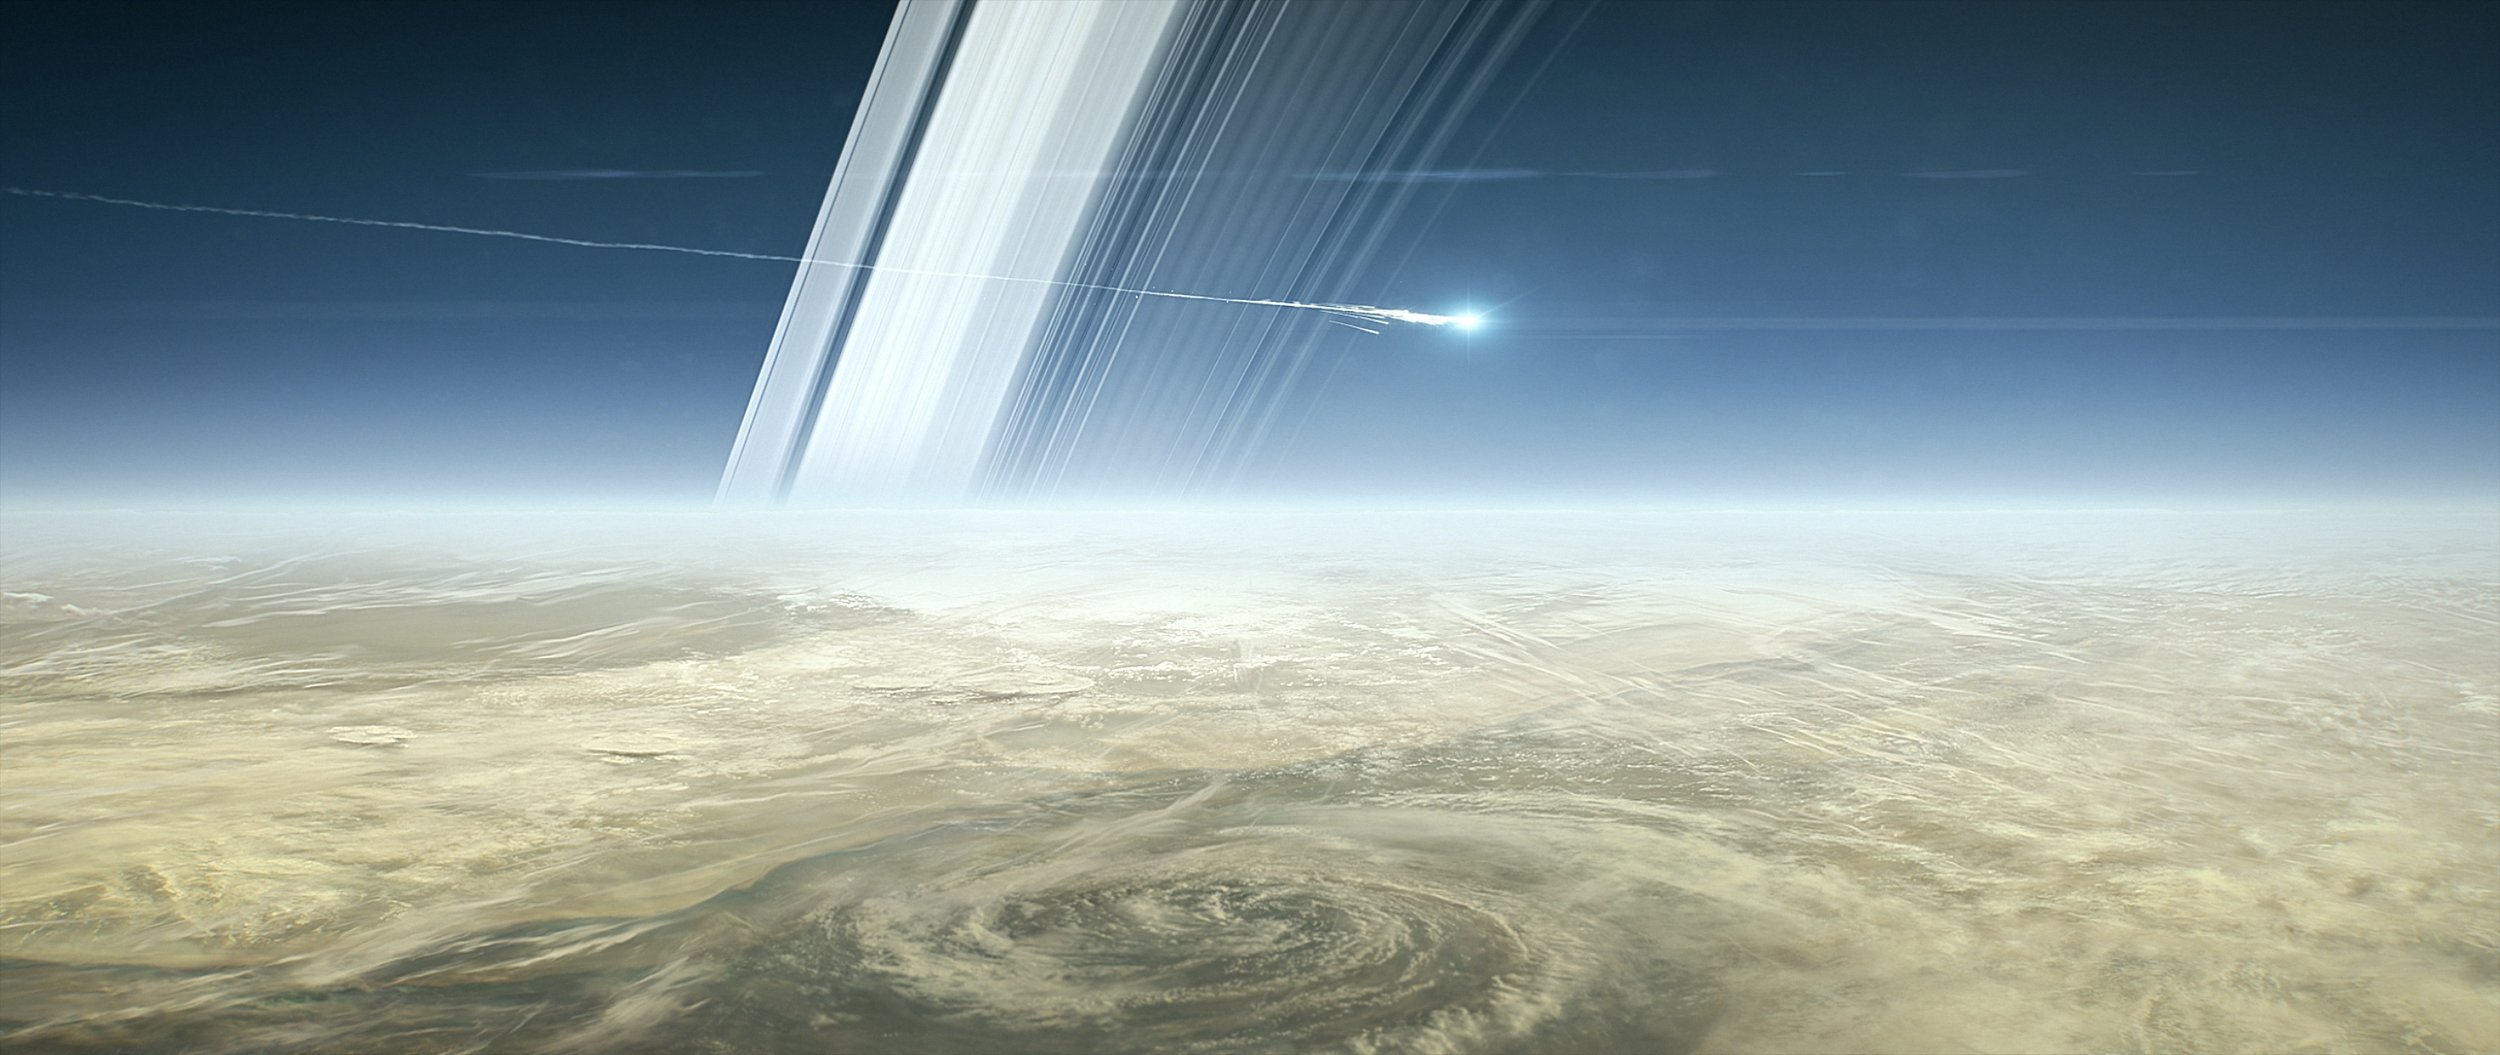 In this screenshot from the short animated film Cassini's Grand Finale, the spacecraft is shown breaking apart after entering Saturn's atmosphere. The planned end of Cassini will occur on Sept. 15, 2017. Image credit: NASA/JPL-Caltech